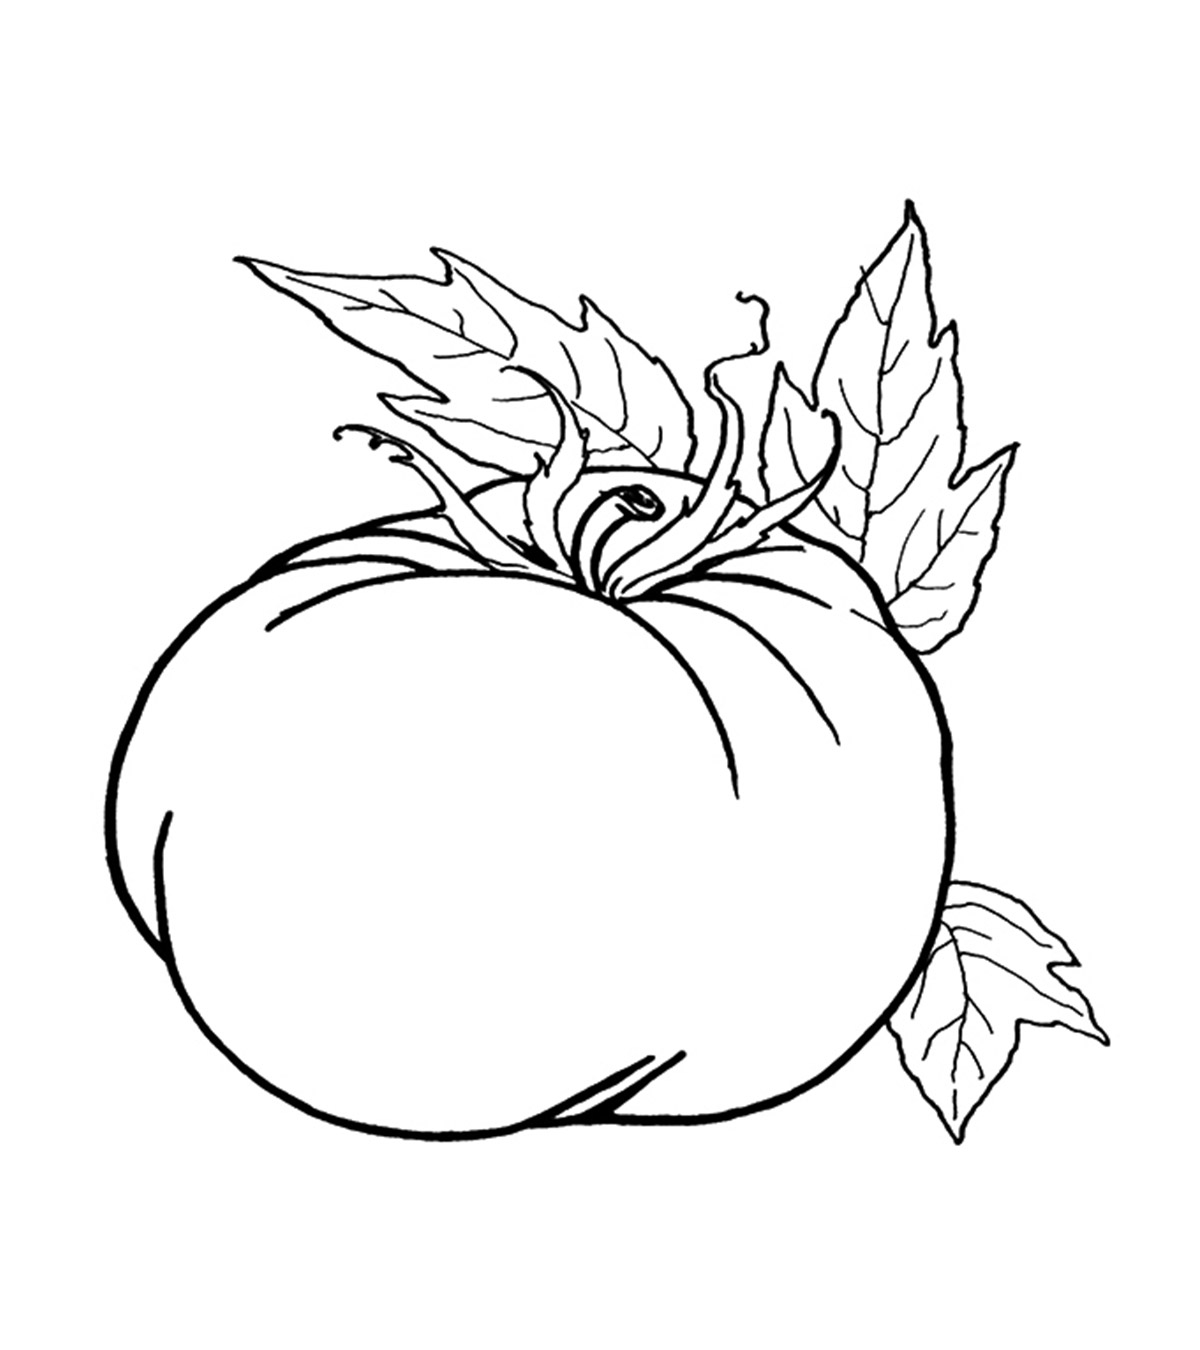 - Fruits And Vegetables Coloring Pages - MomJunction